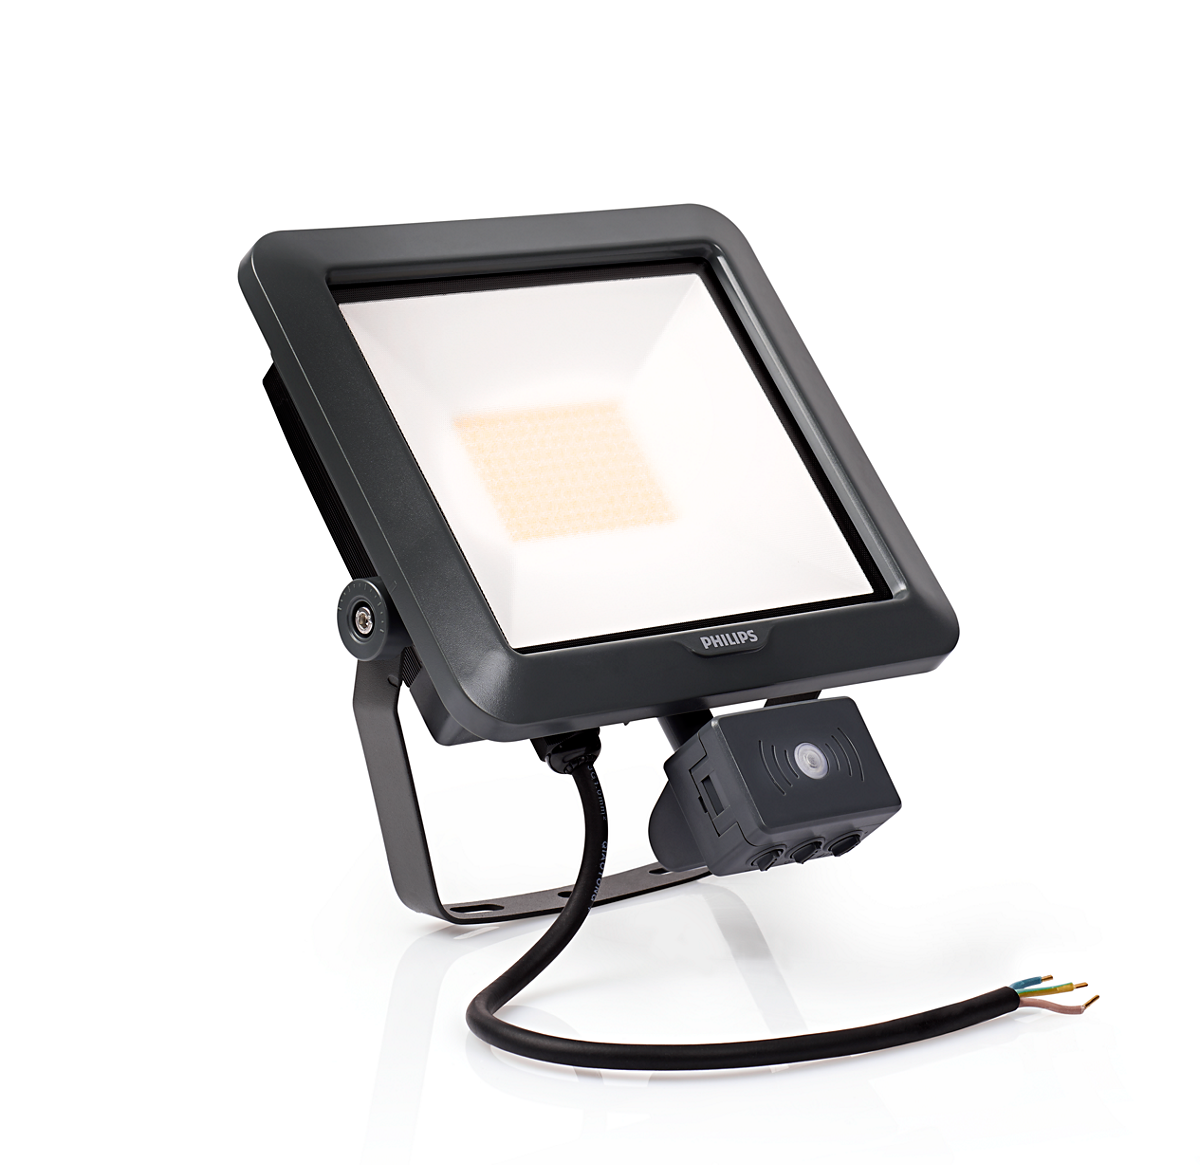 Ledinaire floodlight mini